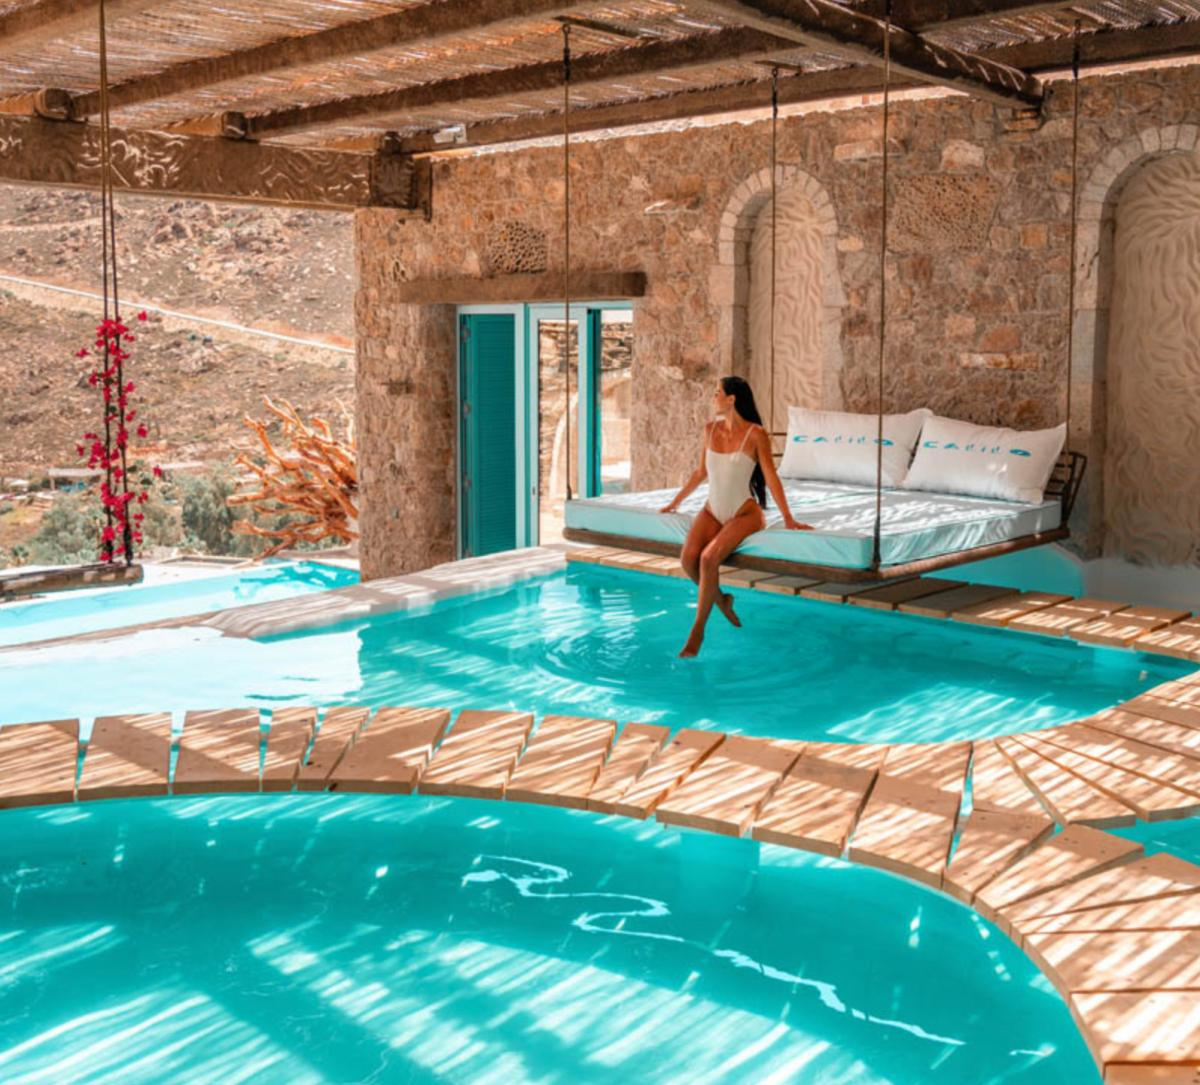 Hotel with private pool - Calilo